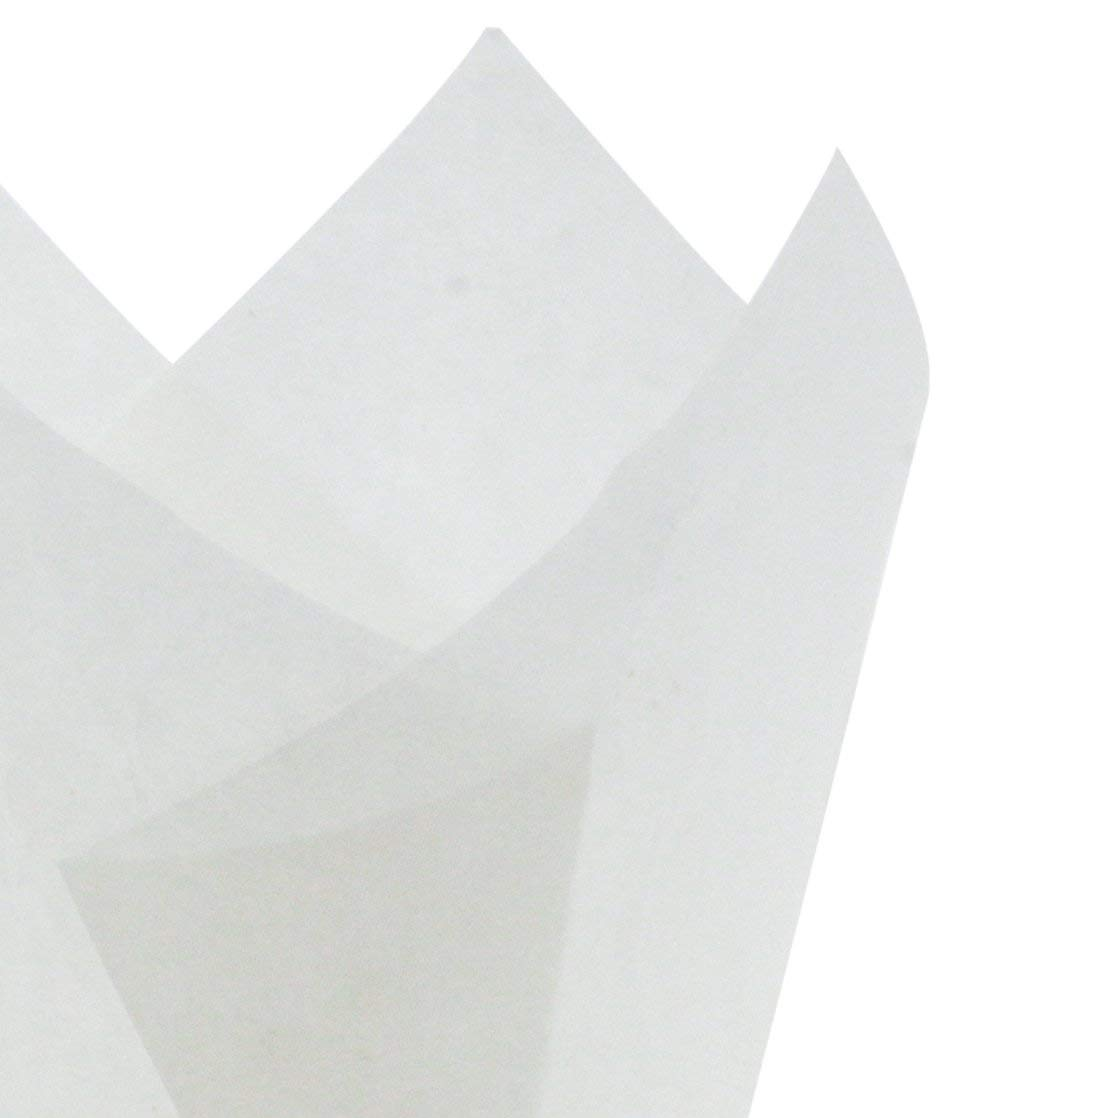 White Tulip Baking Cups, Mini Size, Pack of 250 by Ecobake (Image #4)